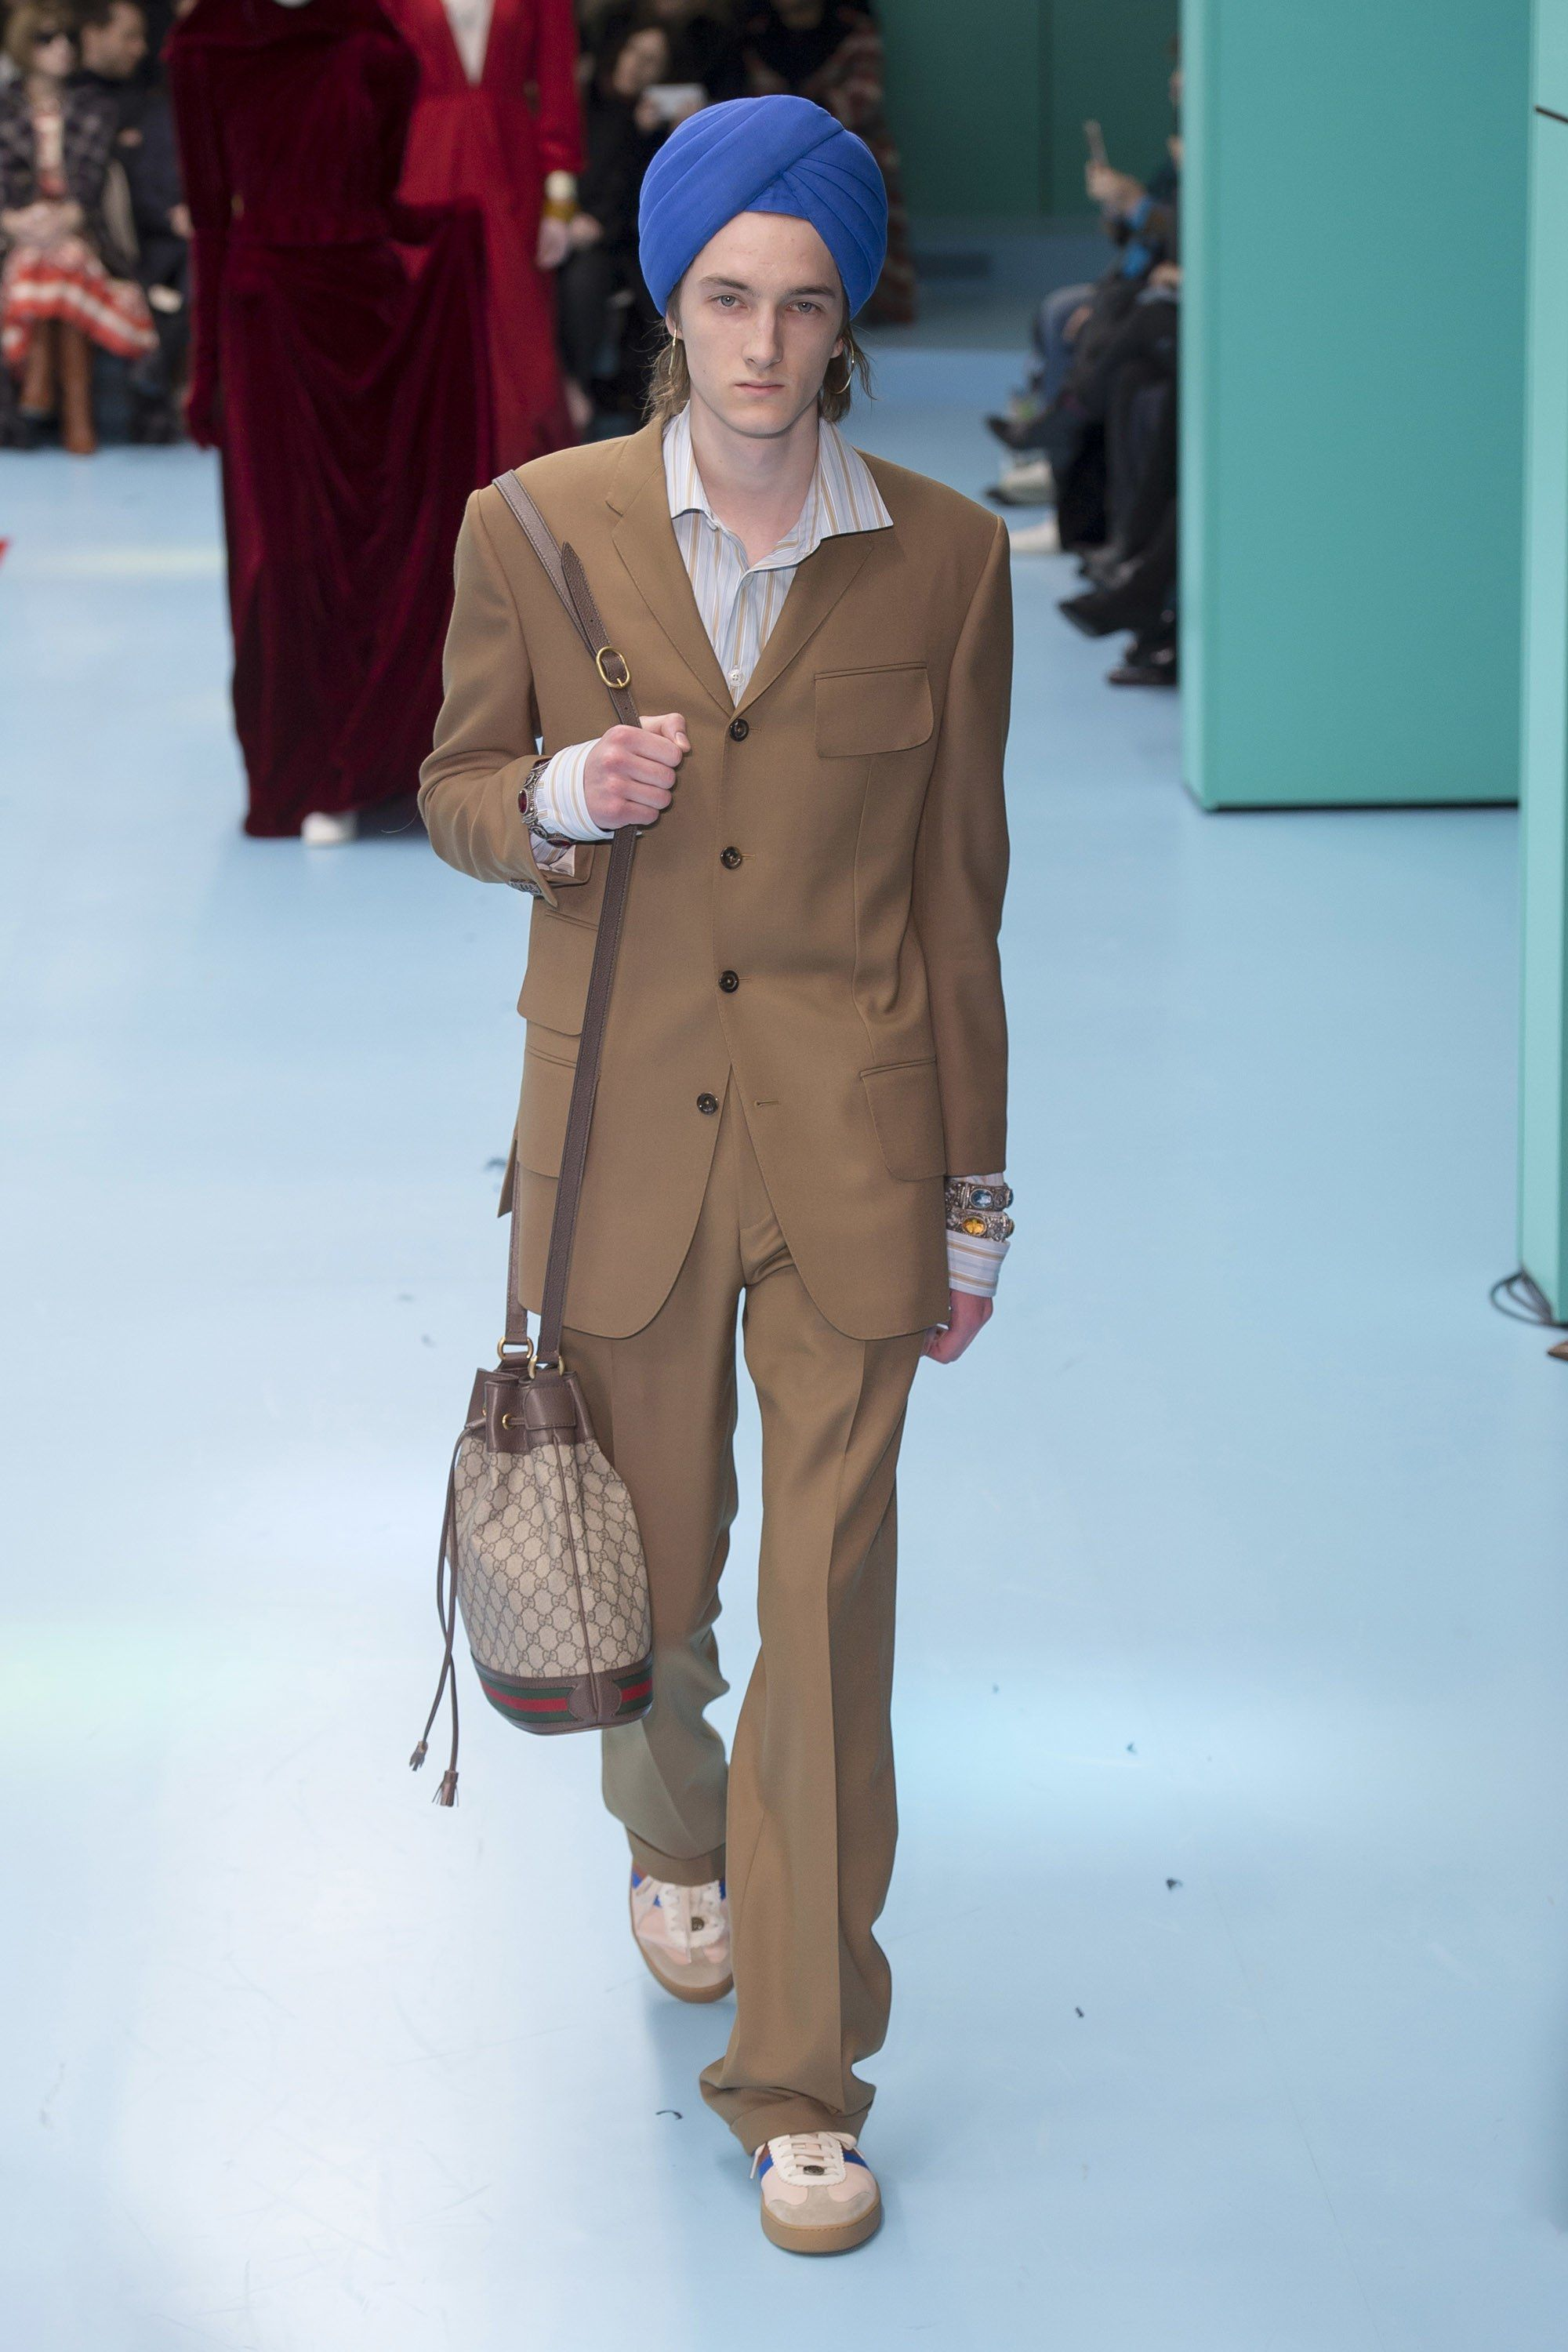 e2fa4d3a3453a Gucci Fall 2018 Ready-to-Wear Collection - Vogue